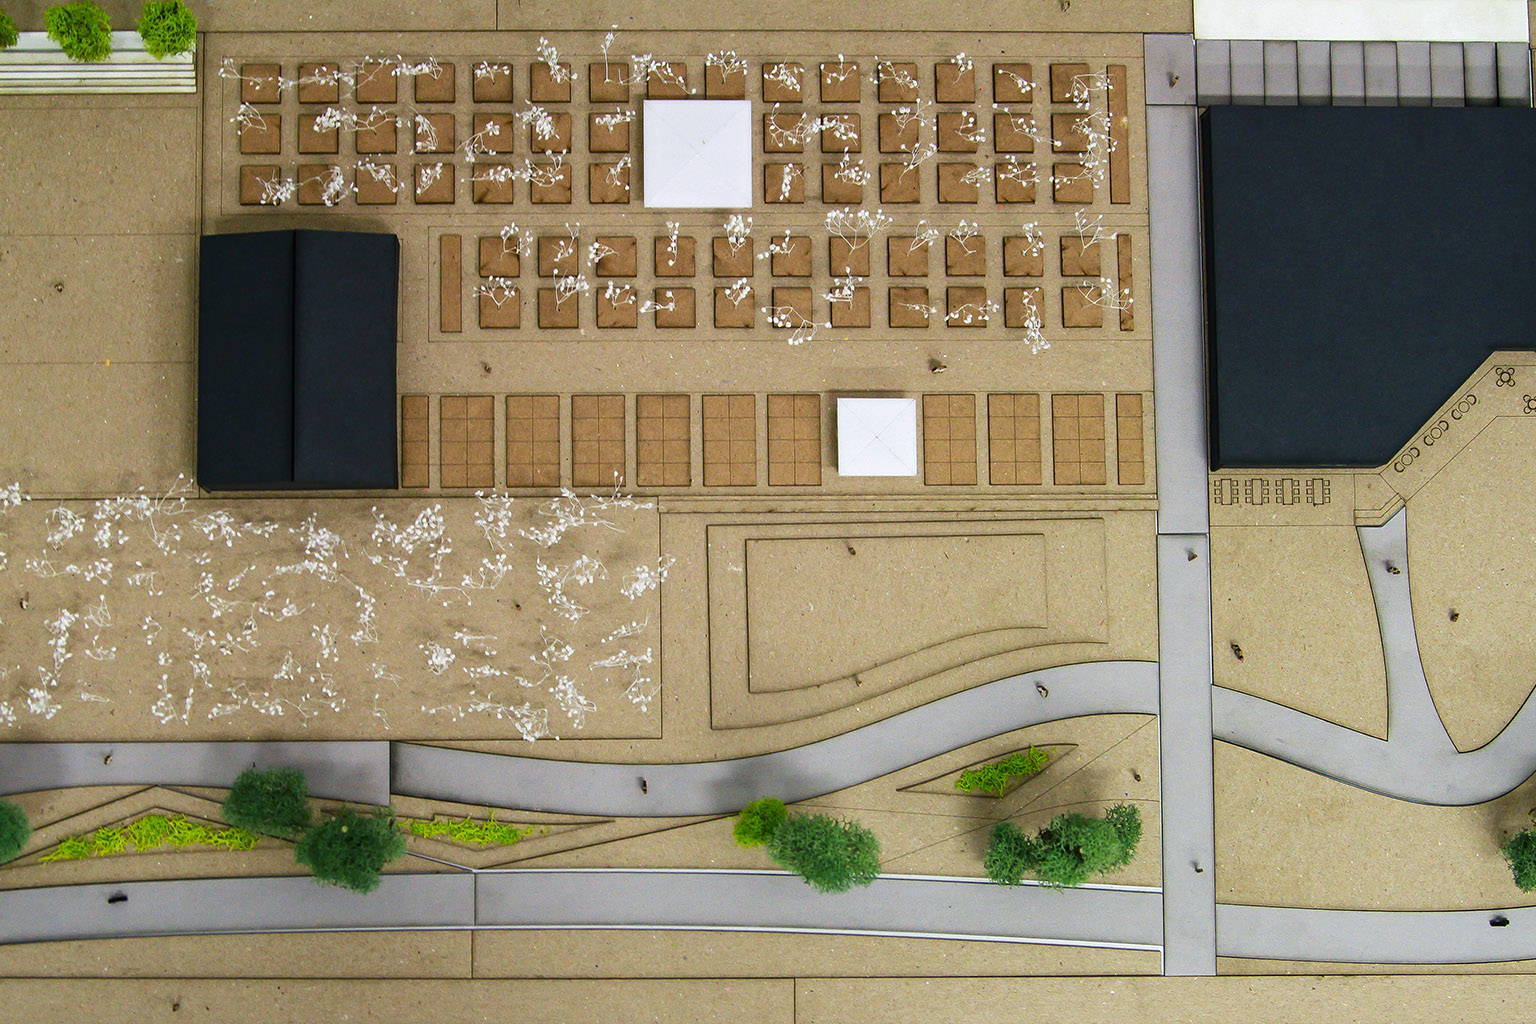 A model shows planters for gardens and trees, terraced seating, and walking and bike paths.